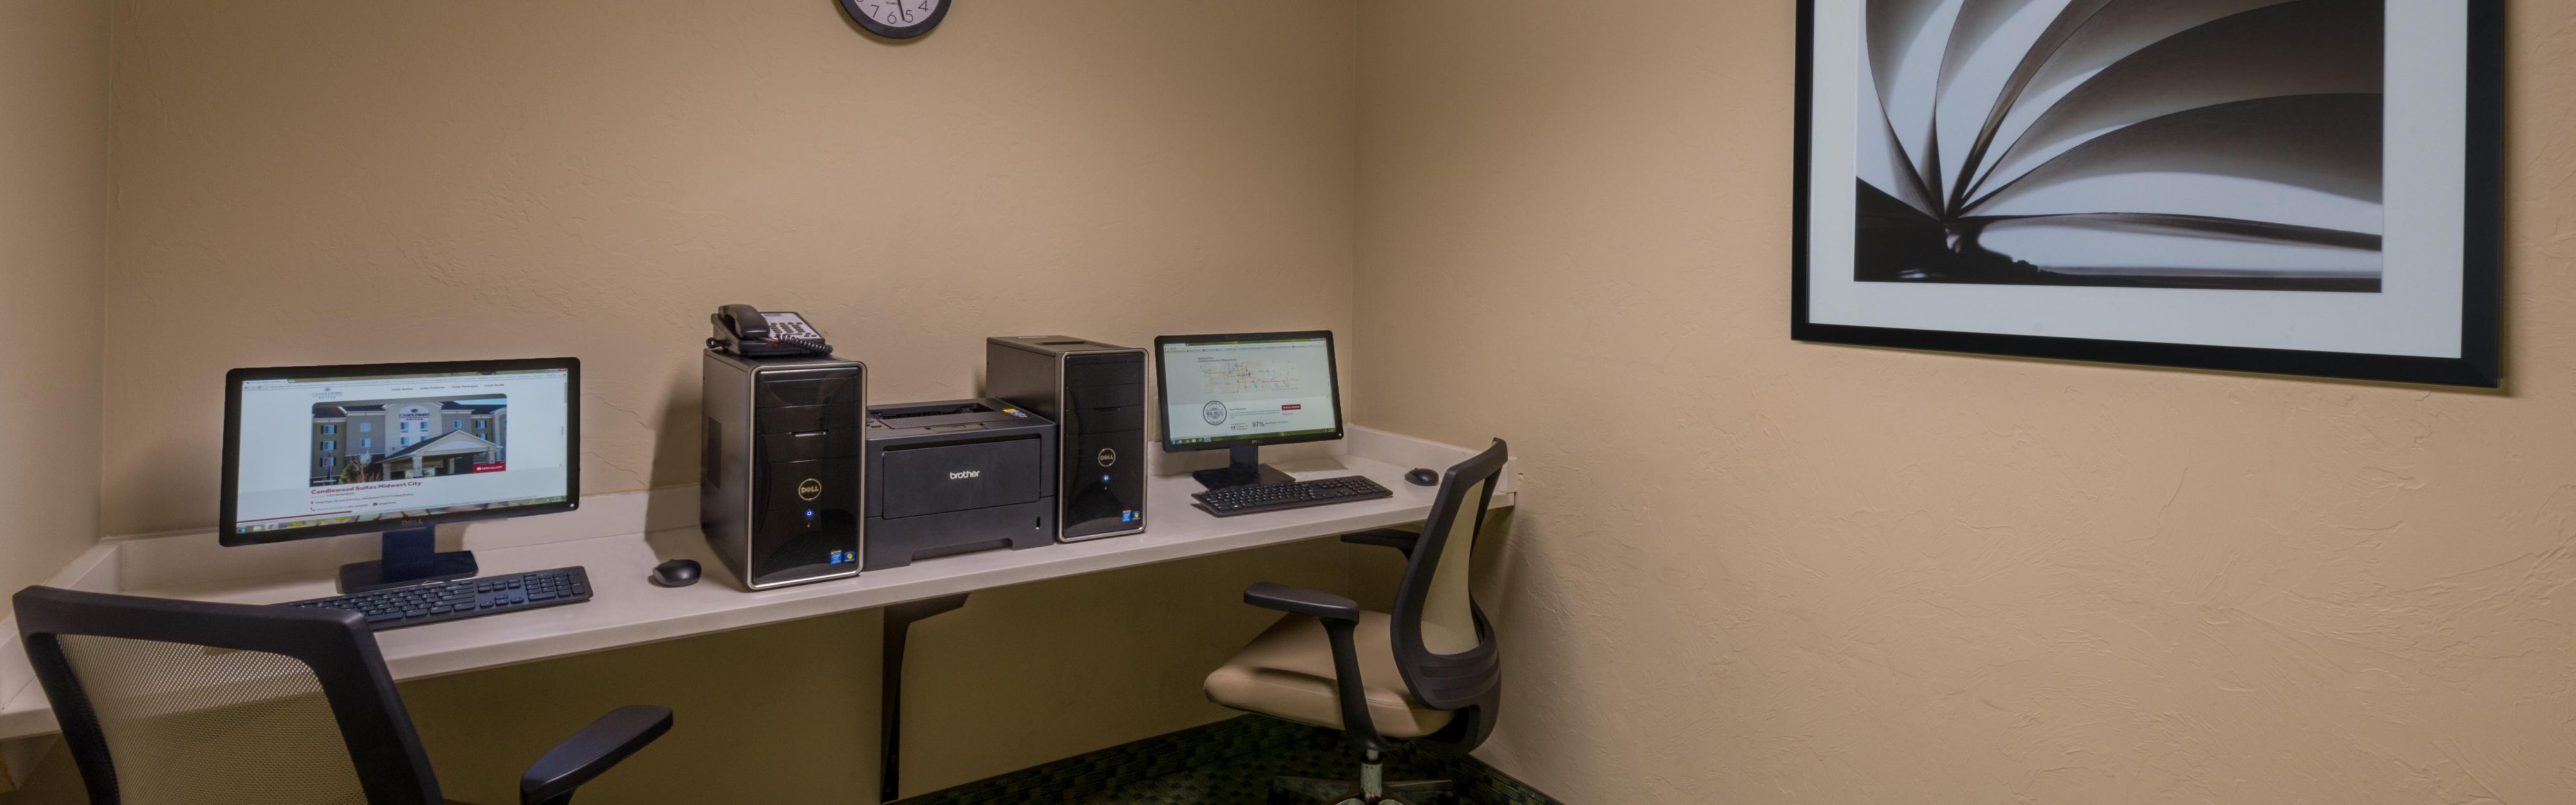 Candlewood Suites Midwest City image 2